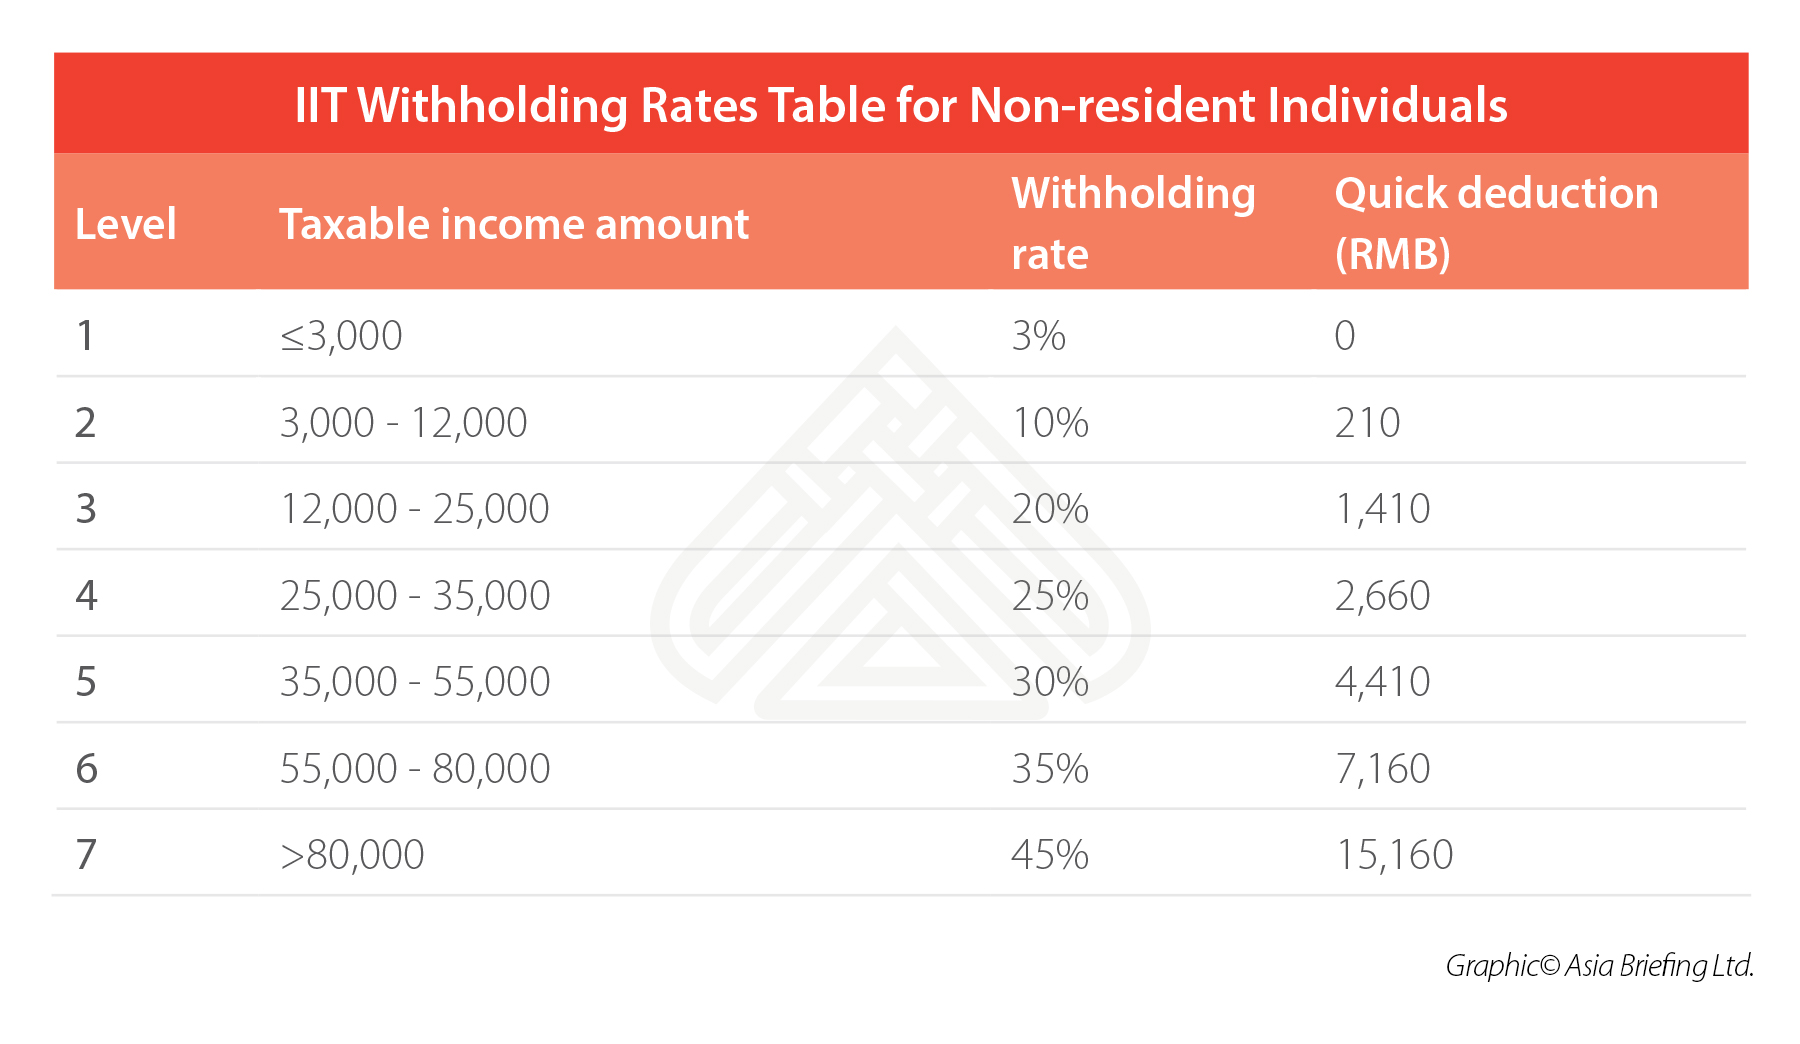 China-IIT-Withholding-rates-non-resident-individuals